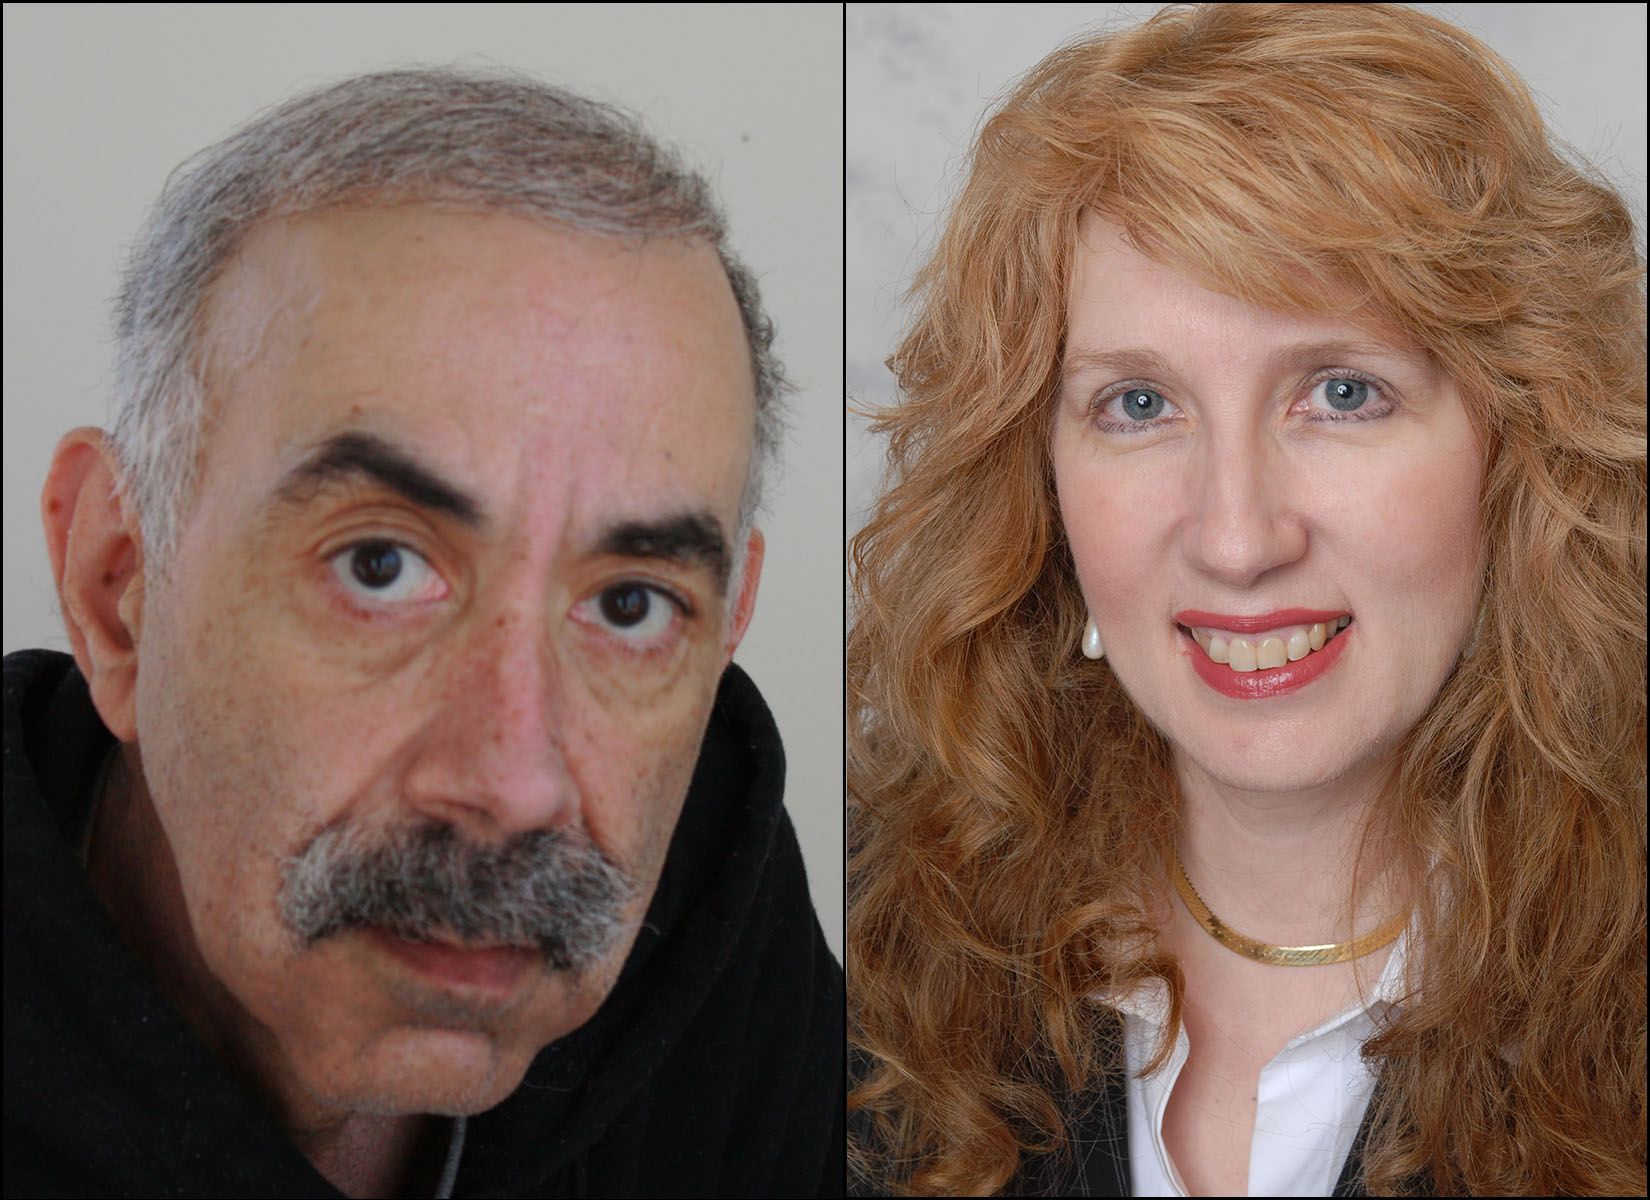 Midday Arts Series: An Afternoon of Poetry and Music with Sharon Rhinesmith and David Moolten